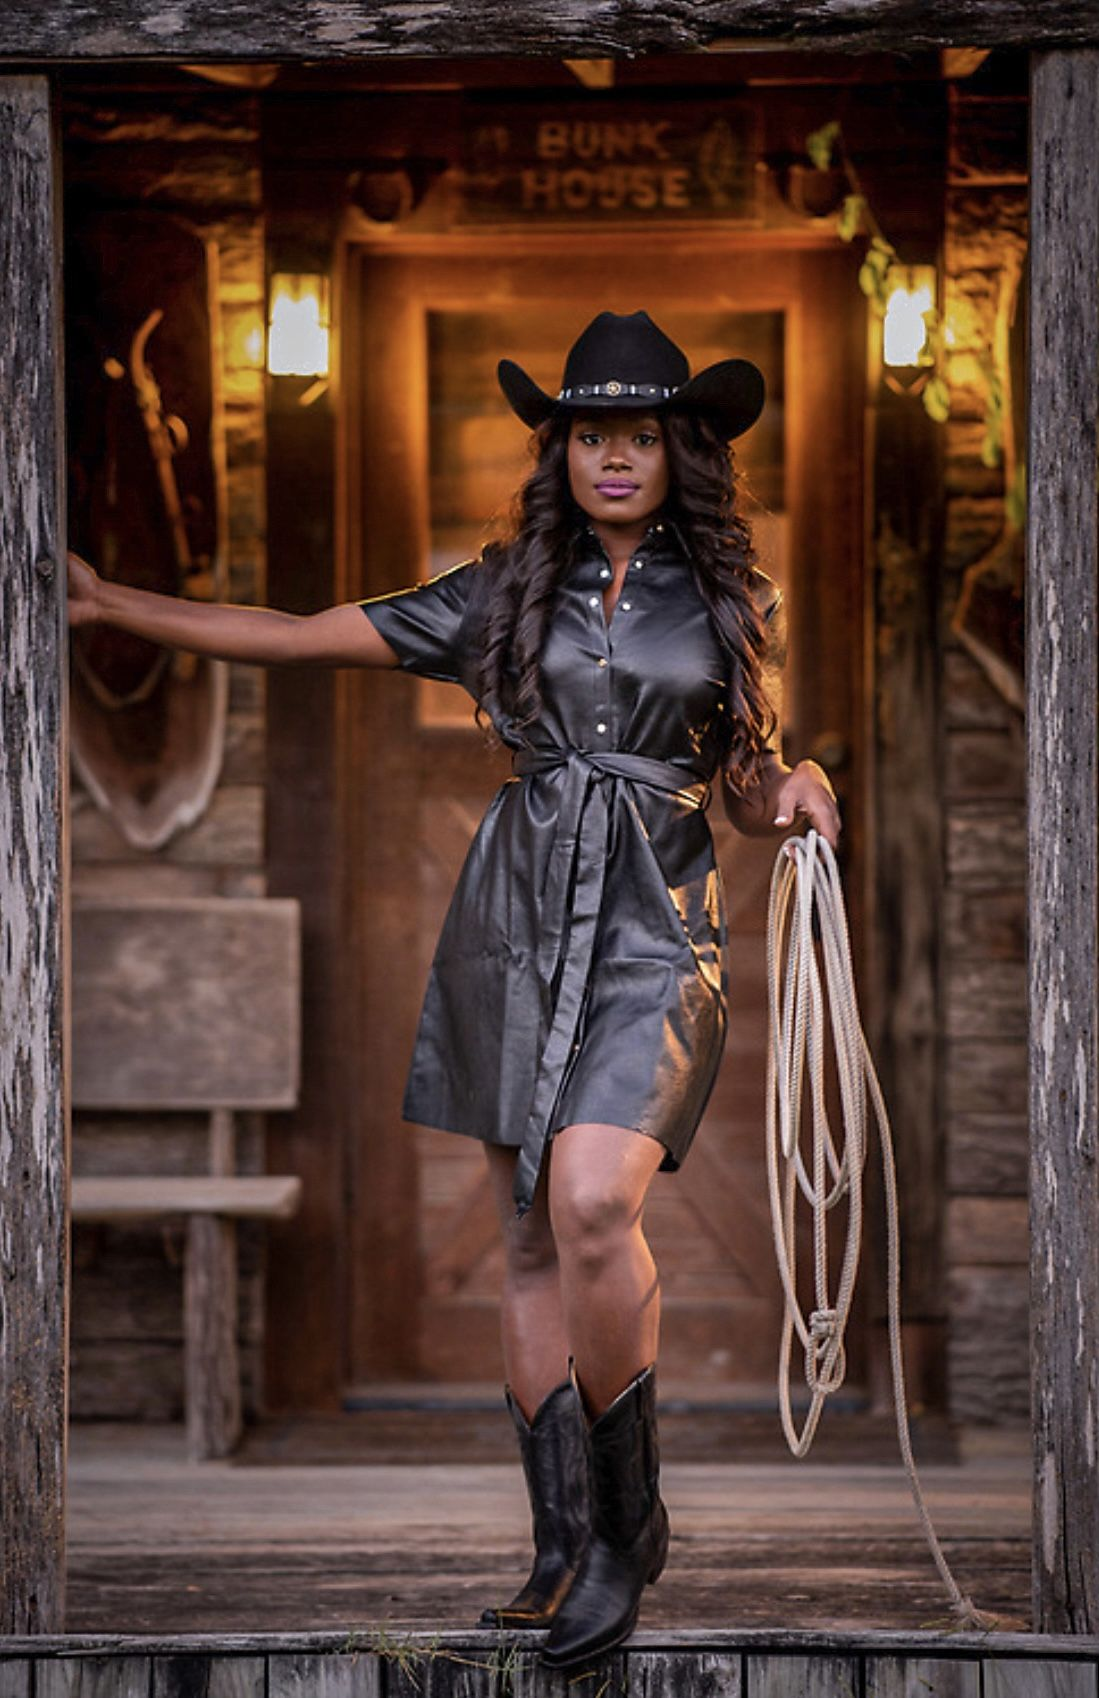 Kicking Off Fall With The Boot Barn Official Black Cowgirl Western Fashion Black Fashion [ 1698 x 1099 Pixel ]